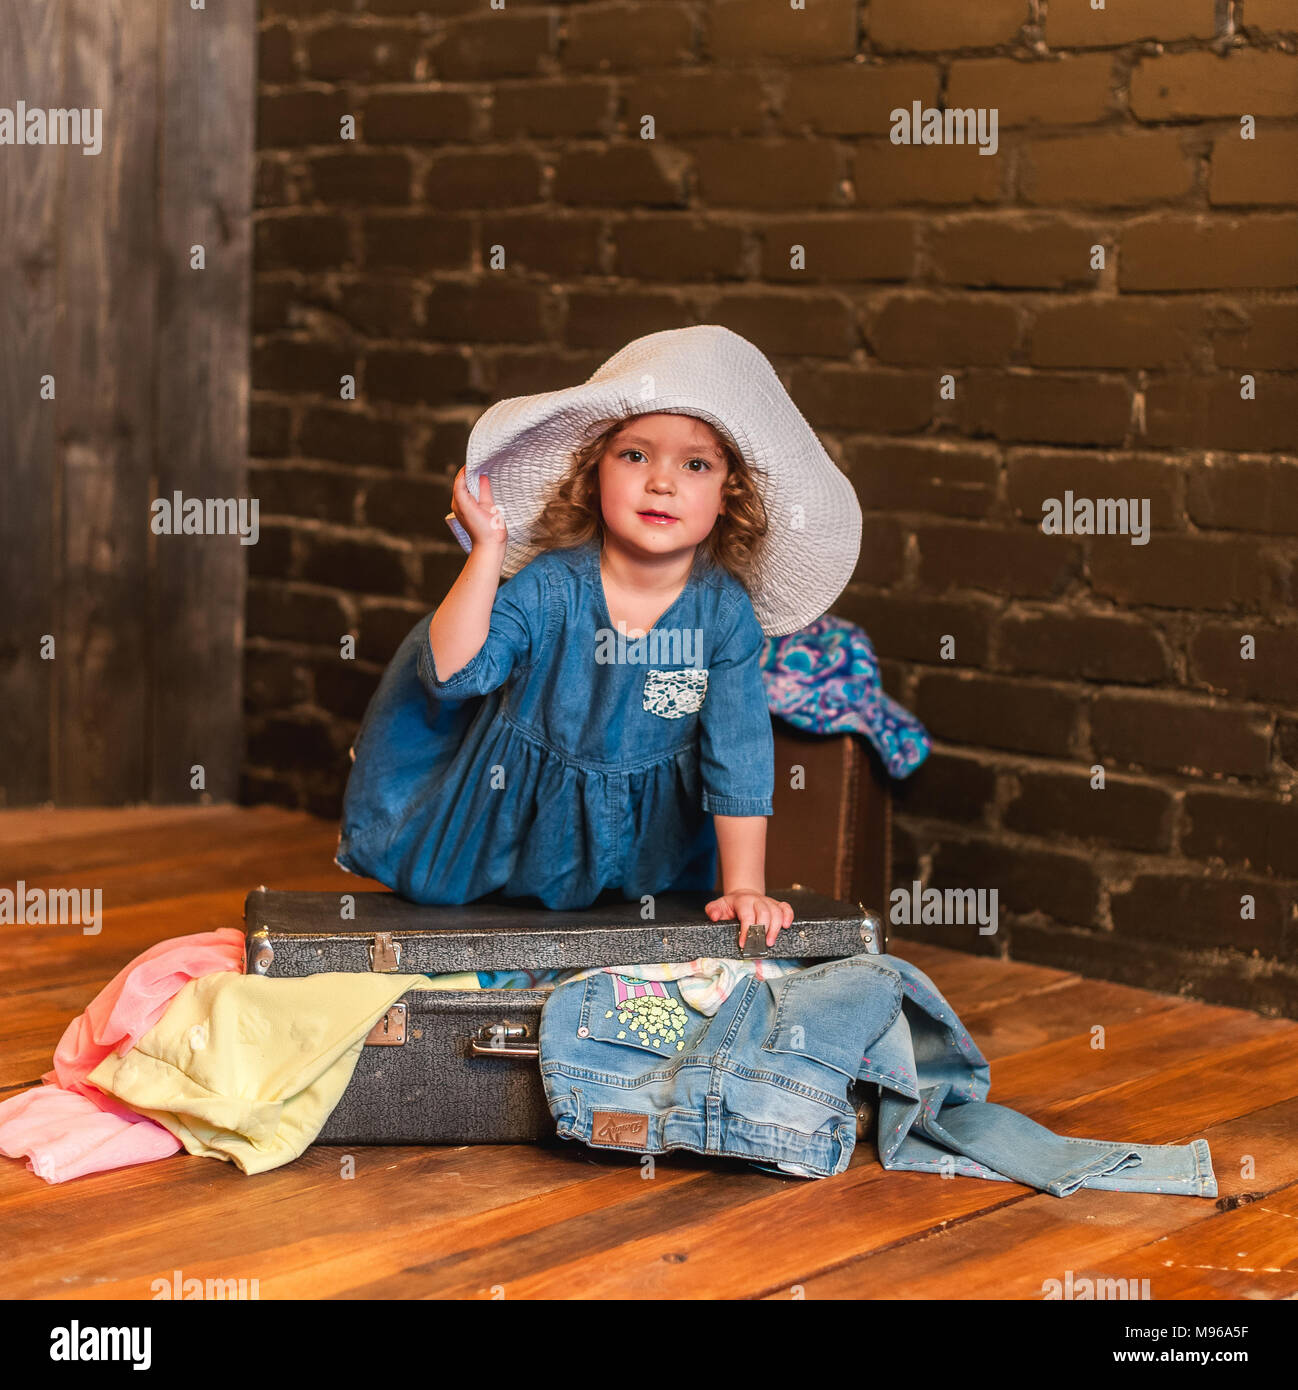 Little girl in a blue dress and white hat closes the suitcase with things. Little traveler preparing for a trip to Europe and Asia - Stock Image